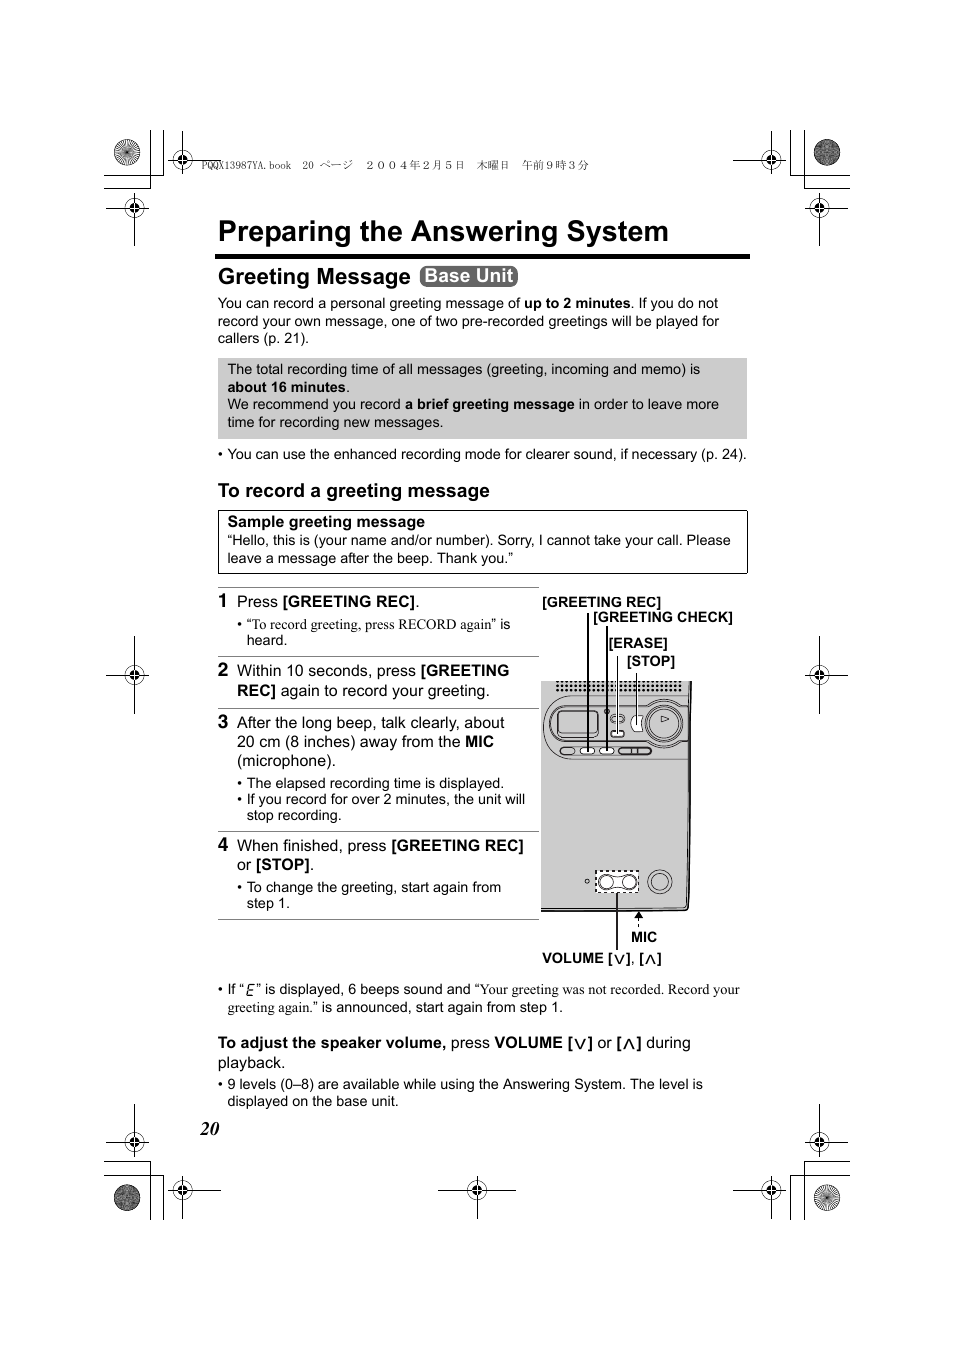 Preparing the answering system greeting message panasonic kx preparing the answering system greeting message panasonic kx tg2346 user manual page 20 84 m4hsunfo